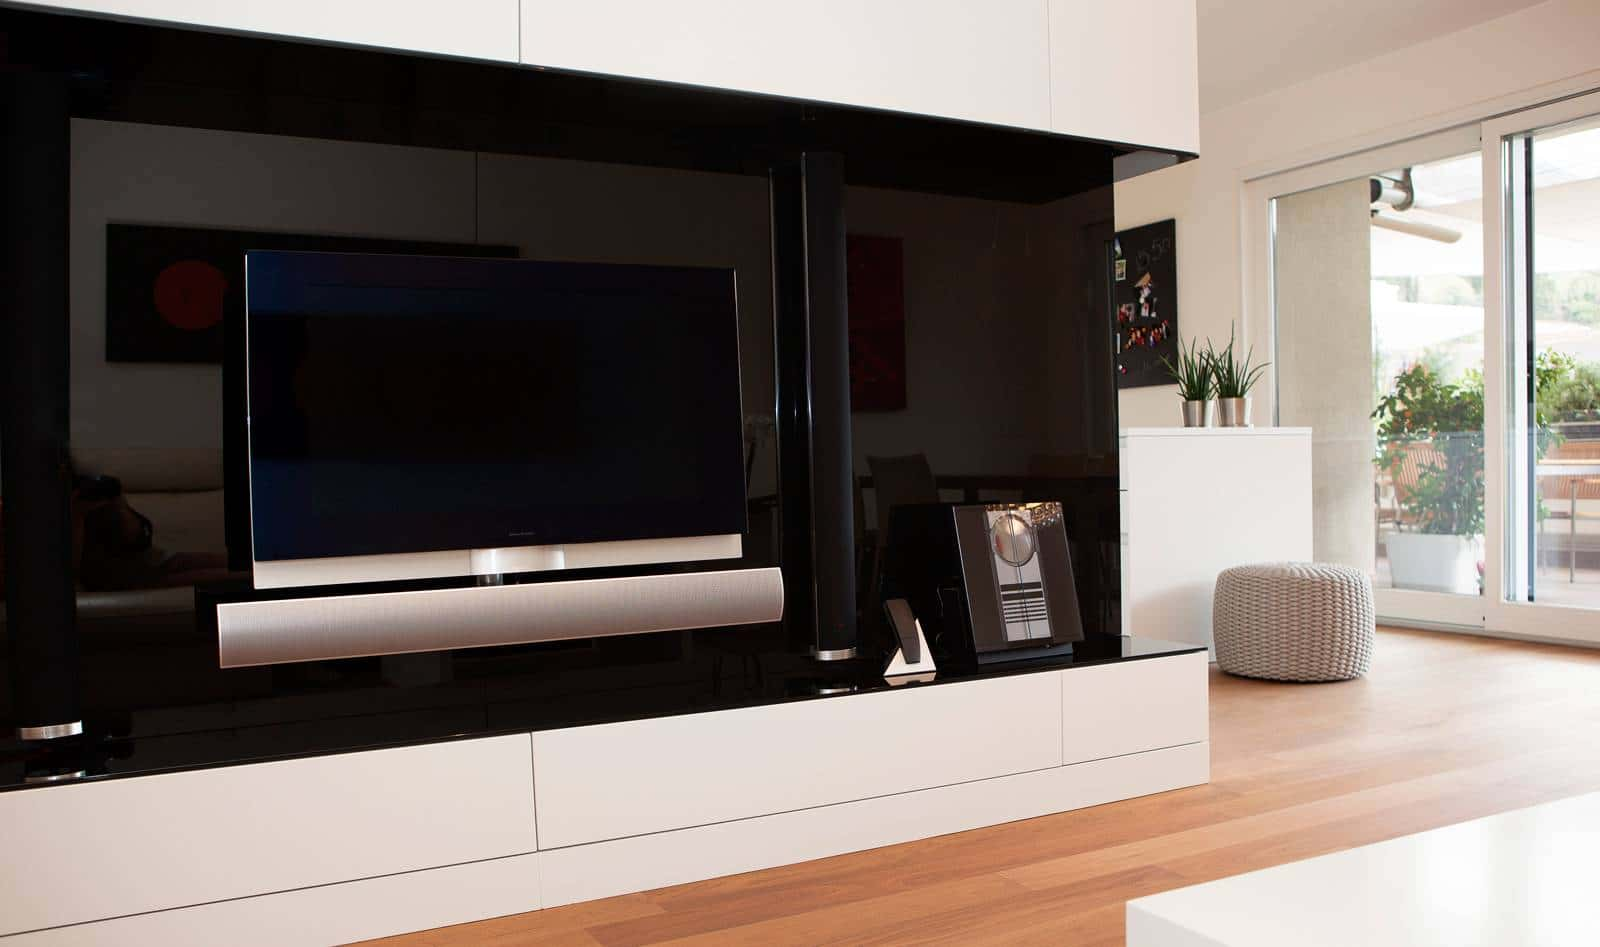 Disenos de muebles para tv en madera for Muebles de diseno moderno para tv